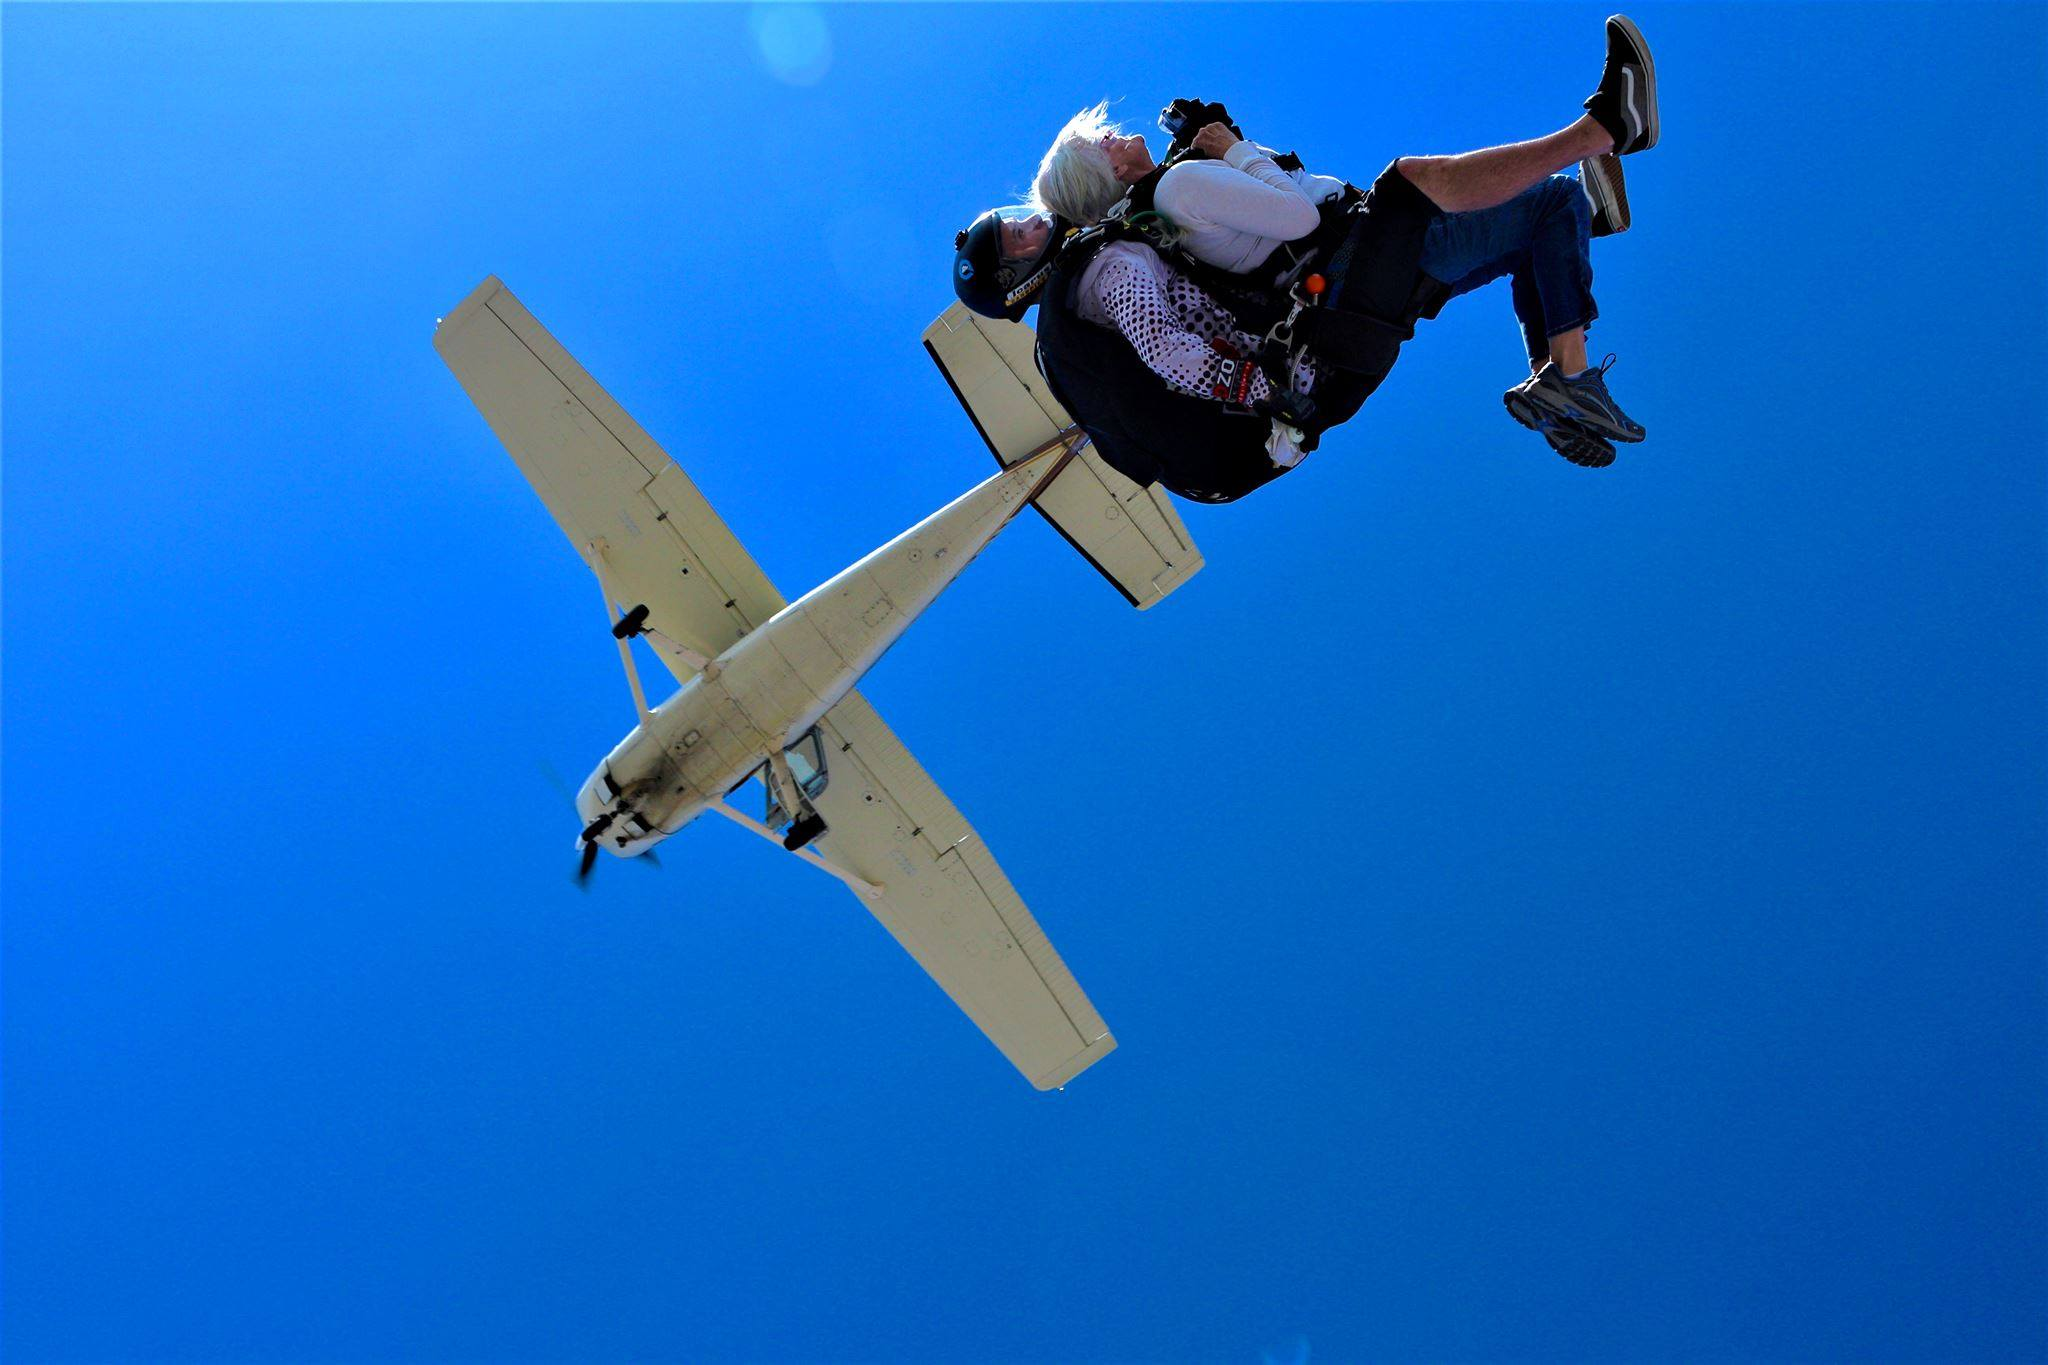 Tandem skydiving at DZONE® Skydiving